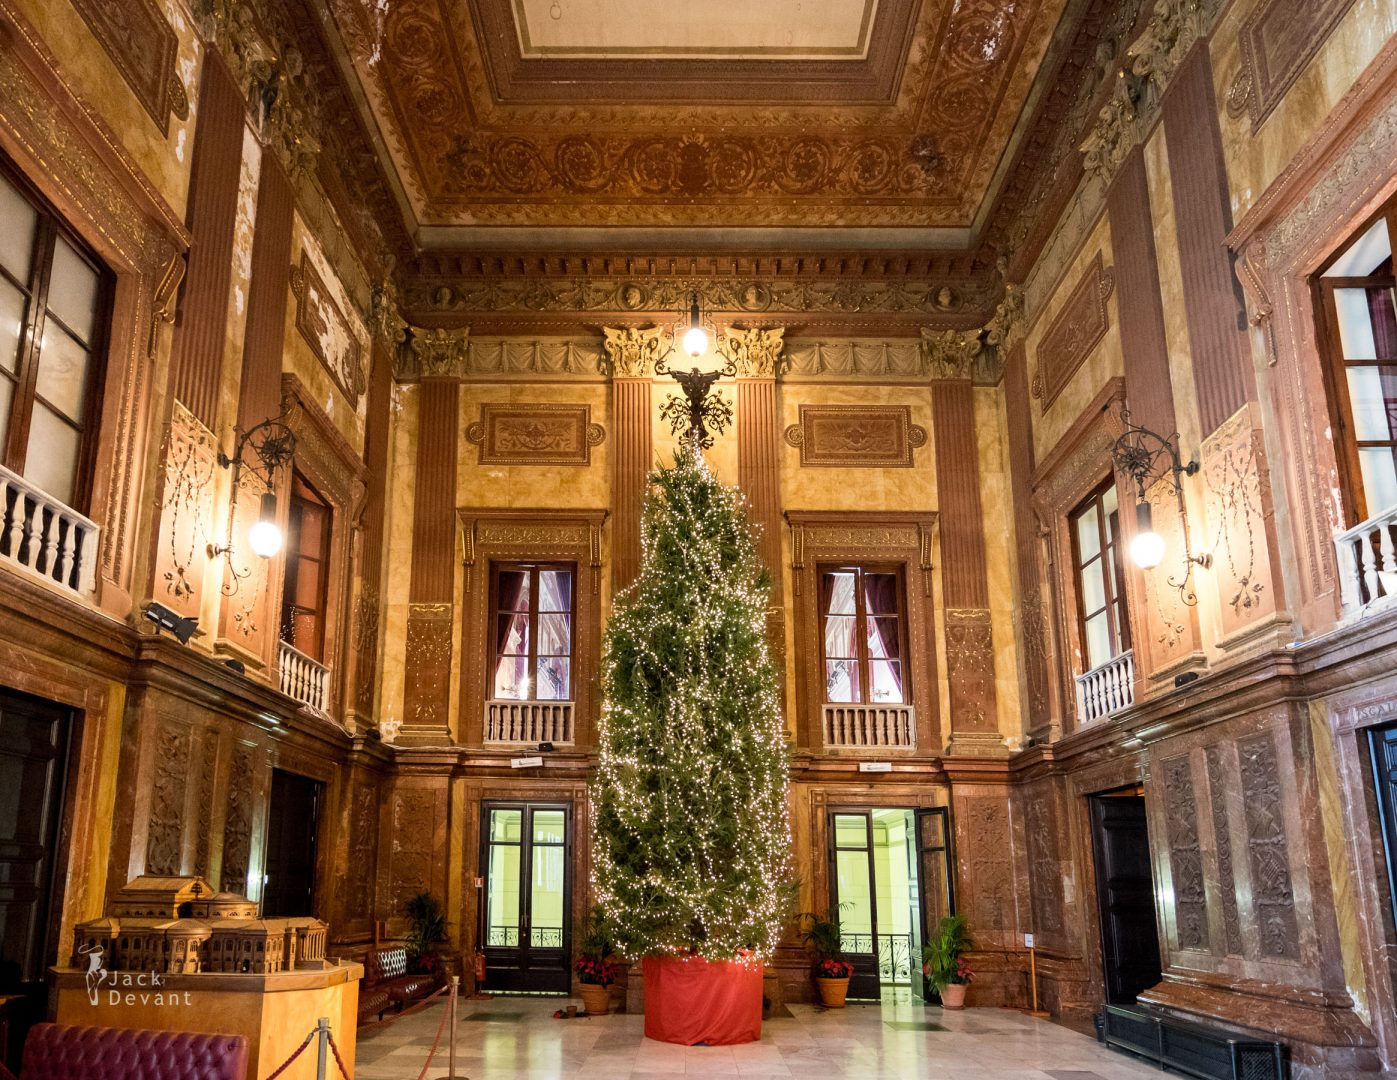 Teatro Massimo christmas tree in the first floor entrance hall